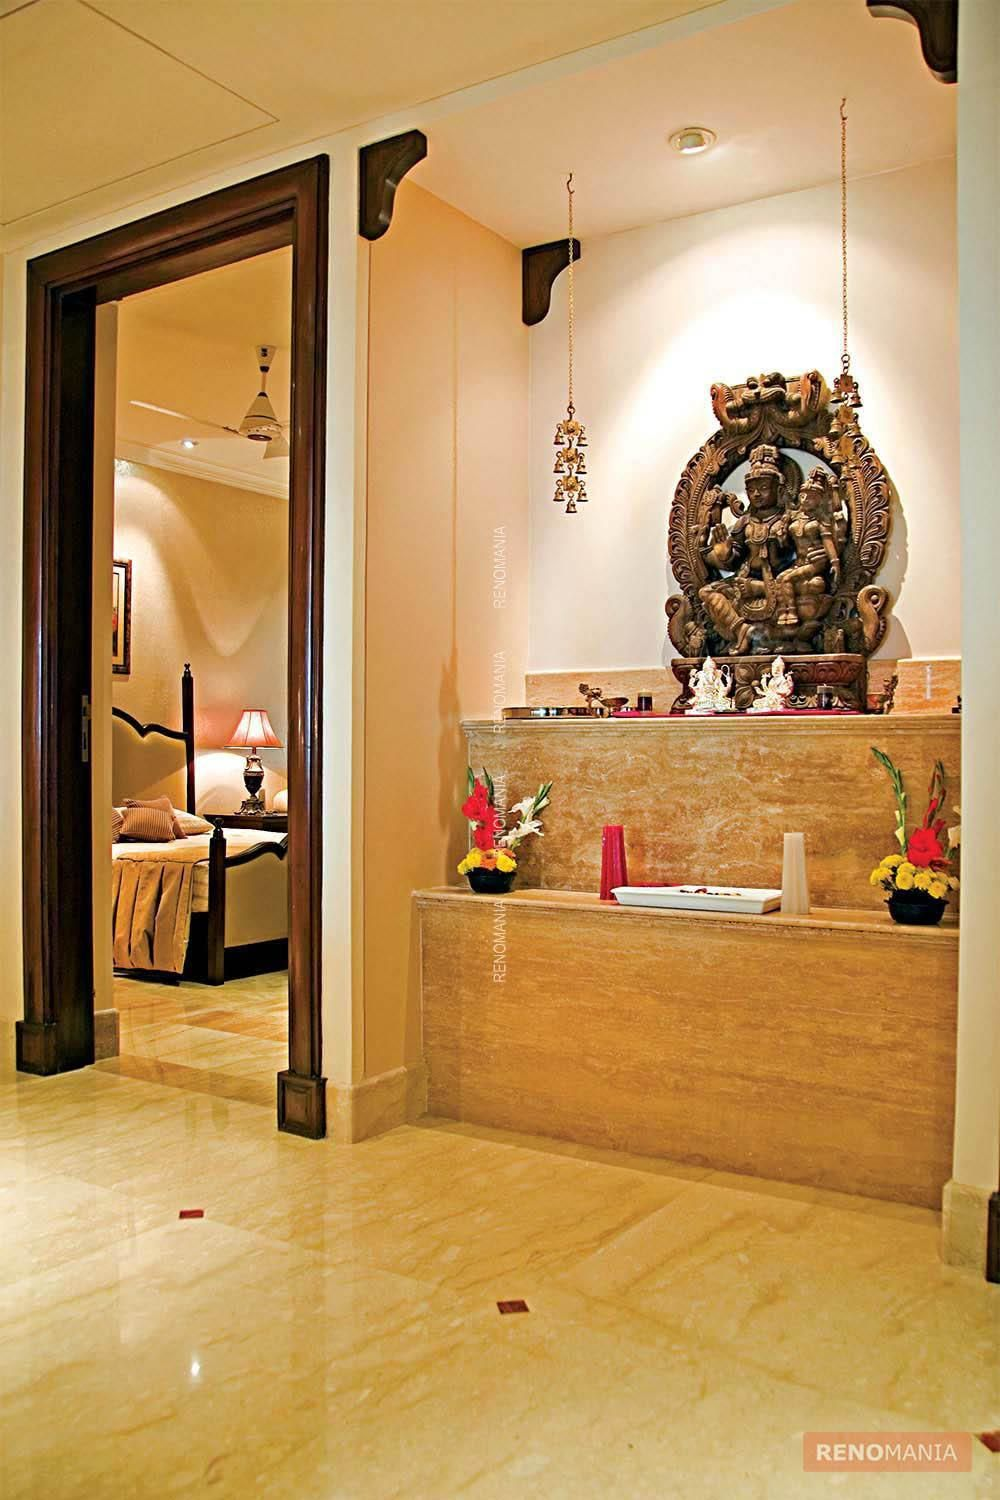 9 Traditional Pooja Room Door Designs In 2020: Pooja Rooms, Pooja Room Design